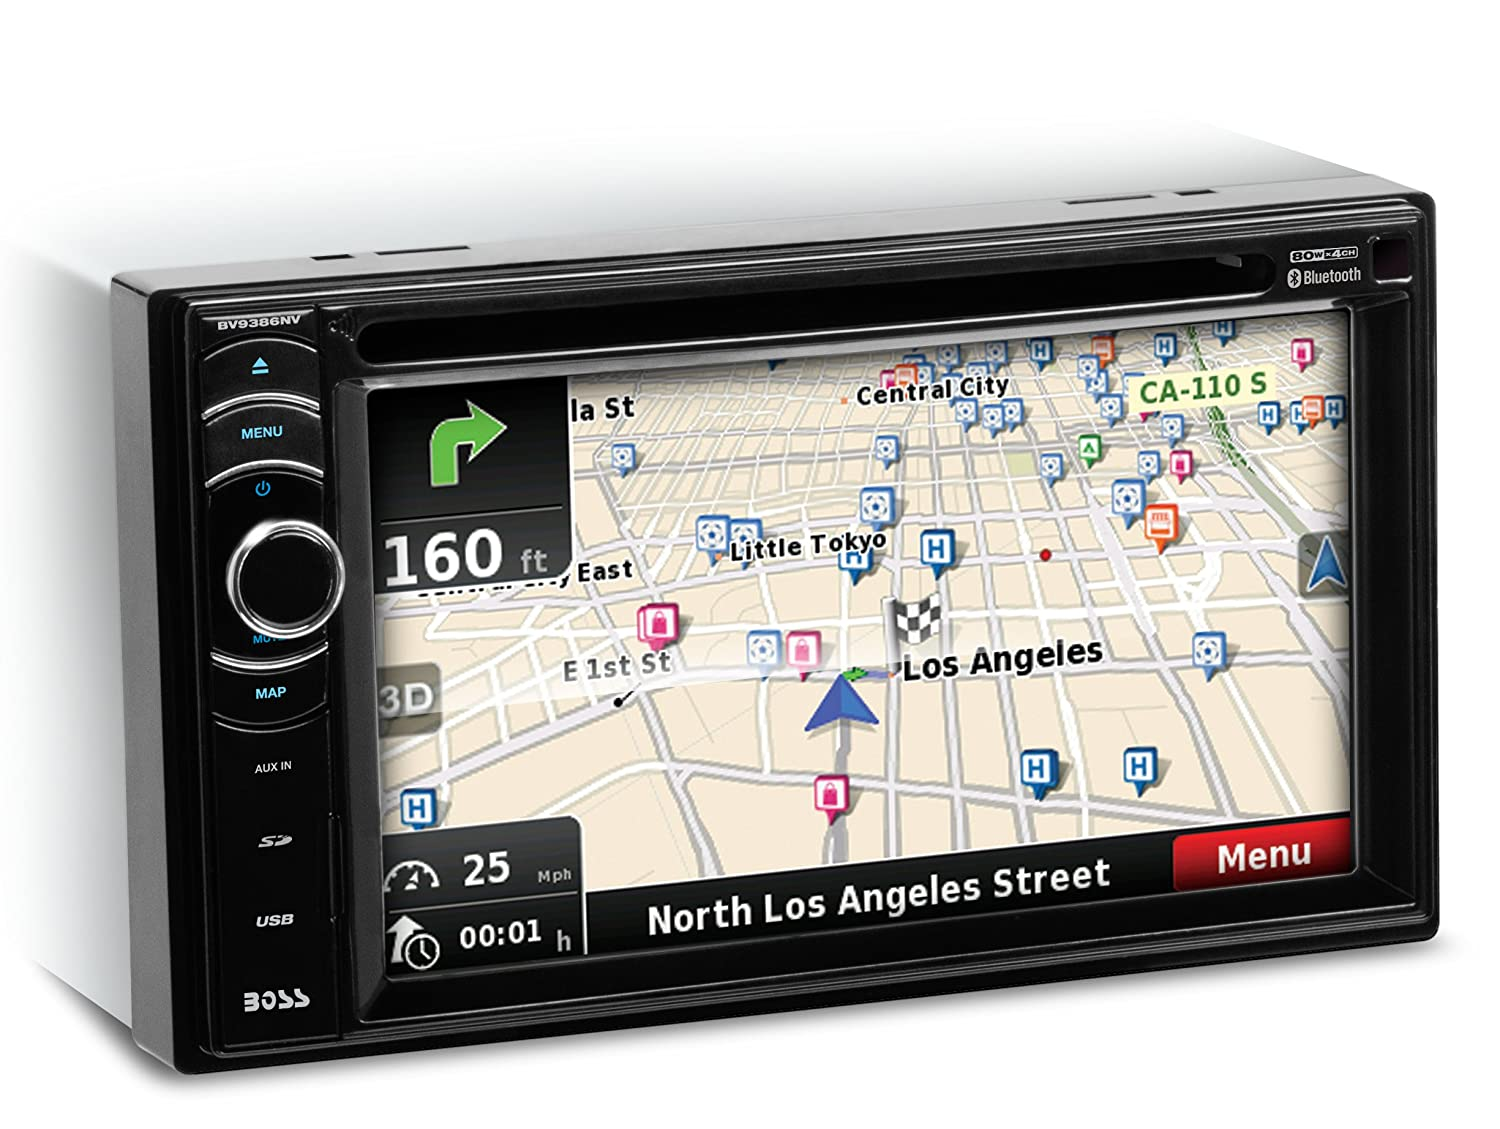 Amazoncom BOSS Audio BVNV Double Din Touchscreen Bluetooth - Los angeles navigation map